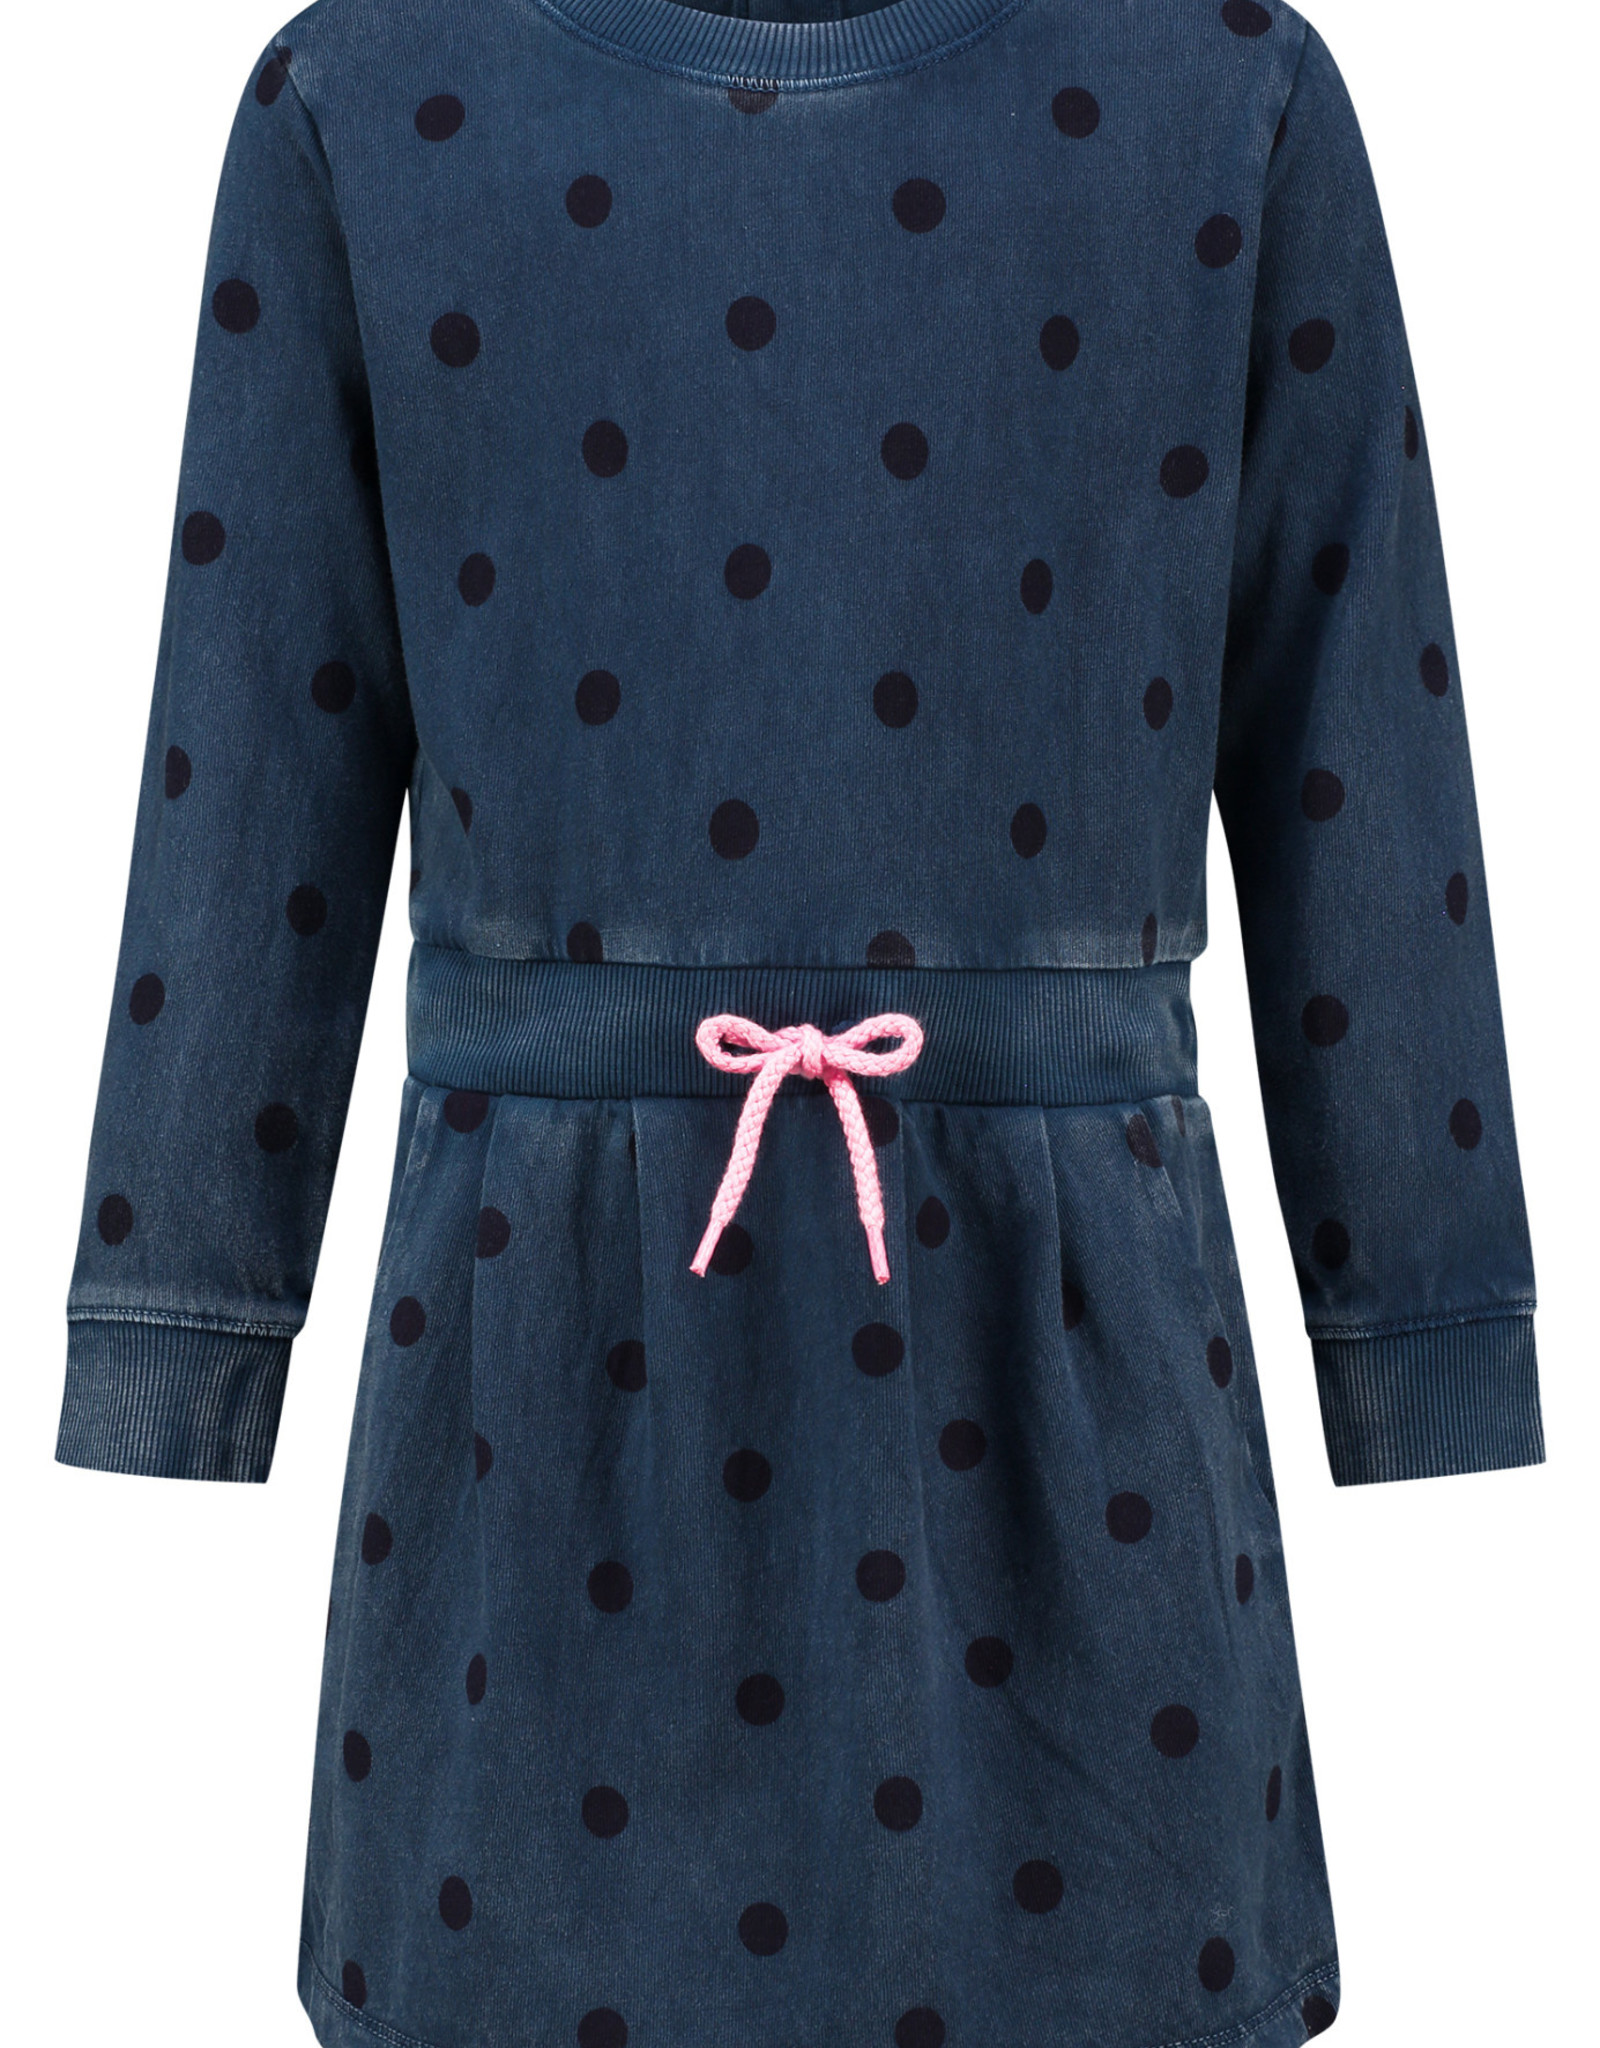 Noppies Noppies Cochituate Dress